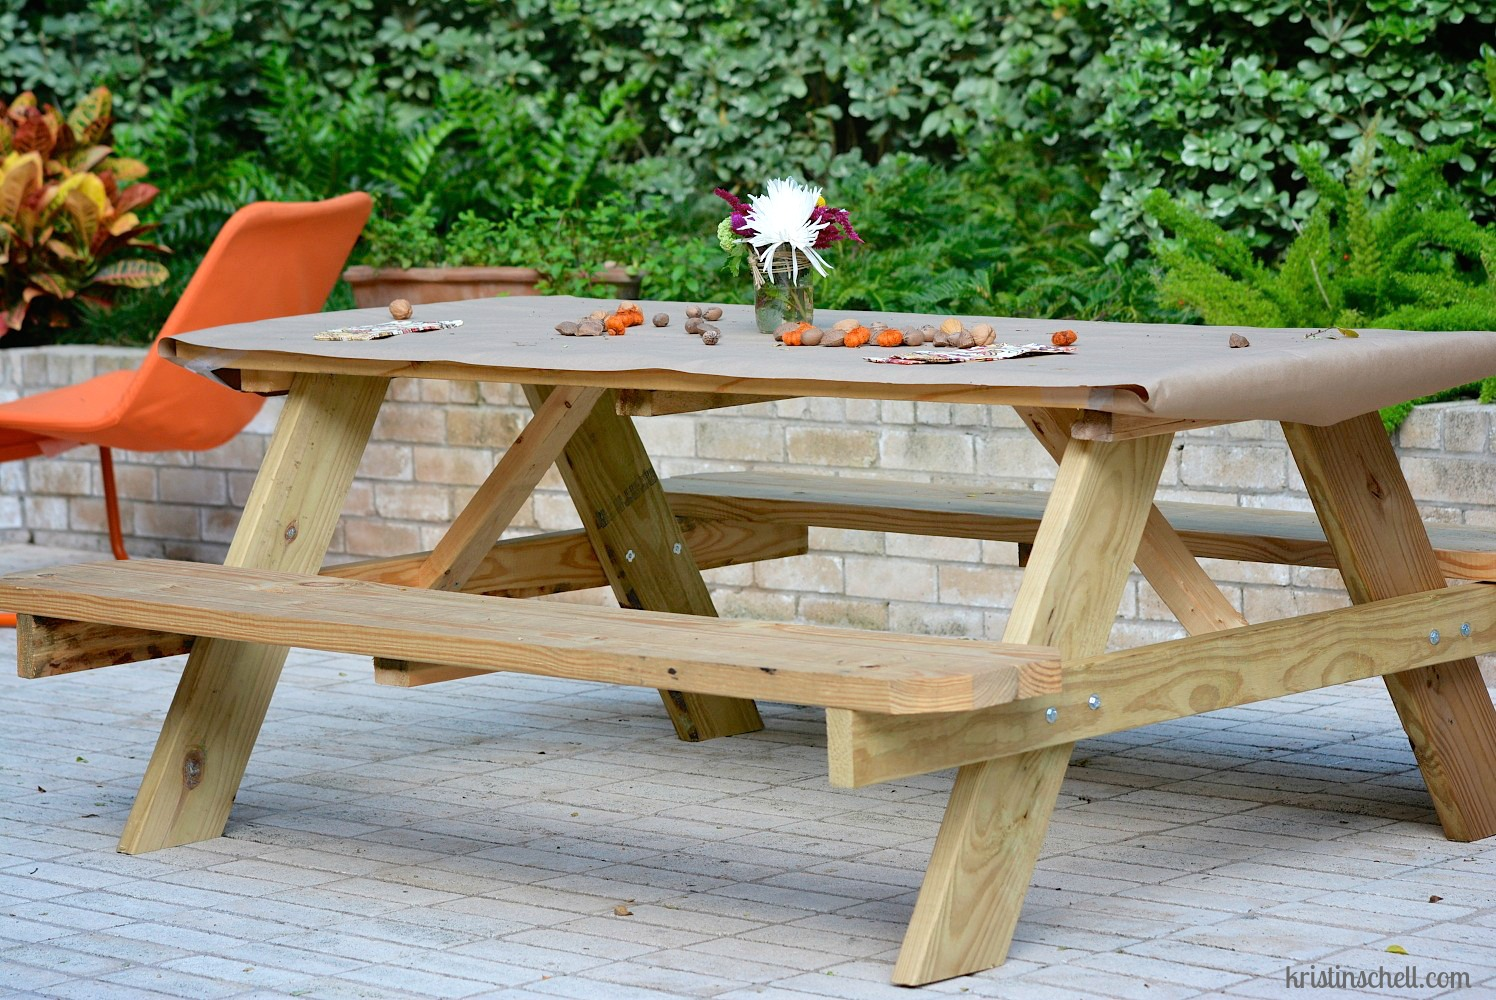 31 days front yard people kristin schell for 10 person picnic table